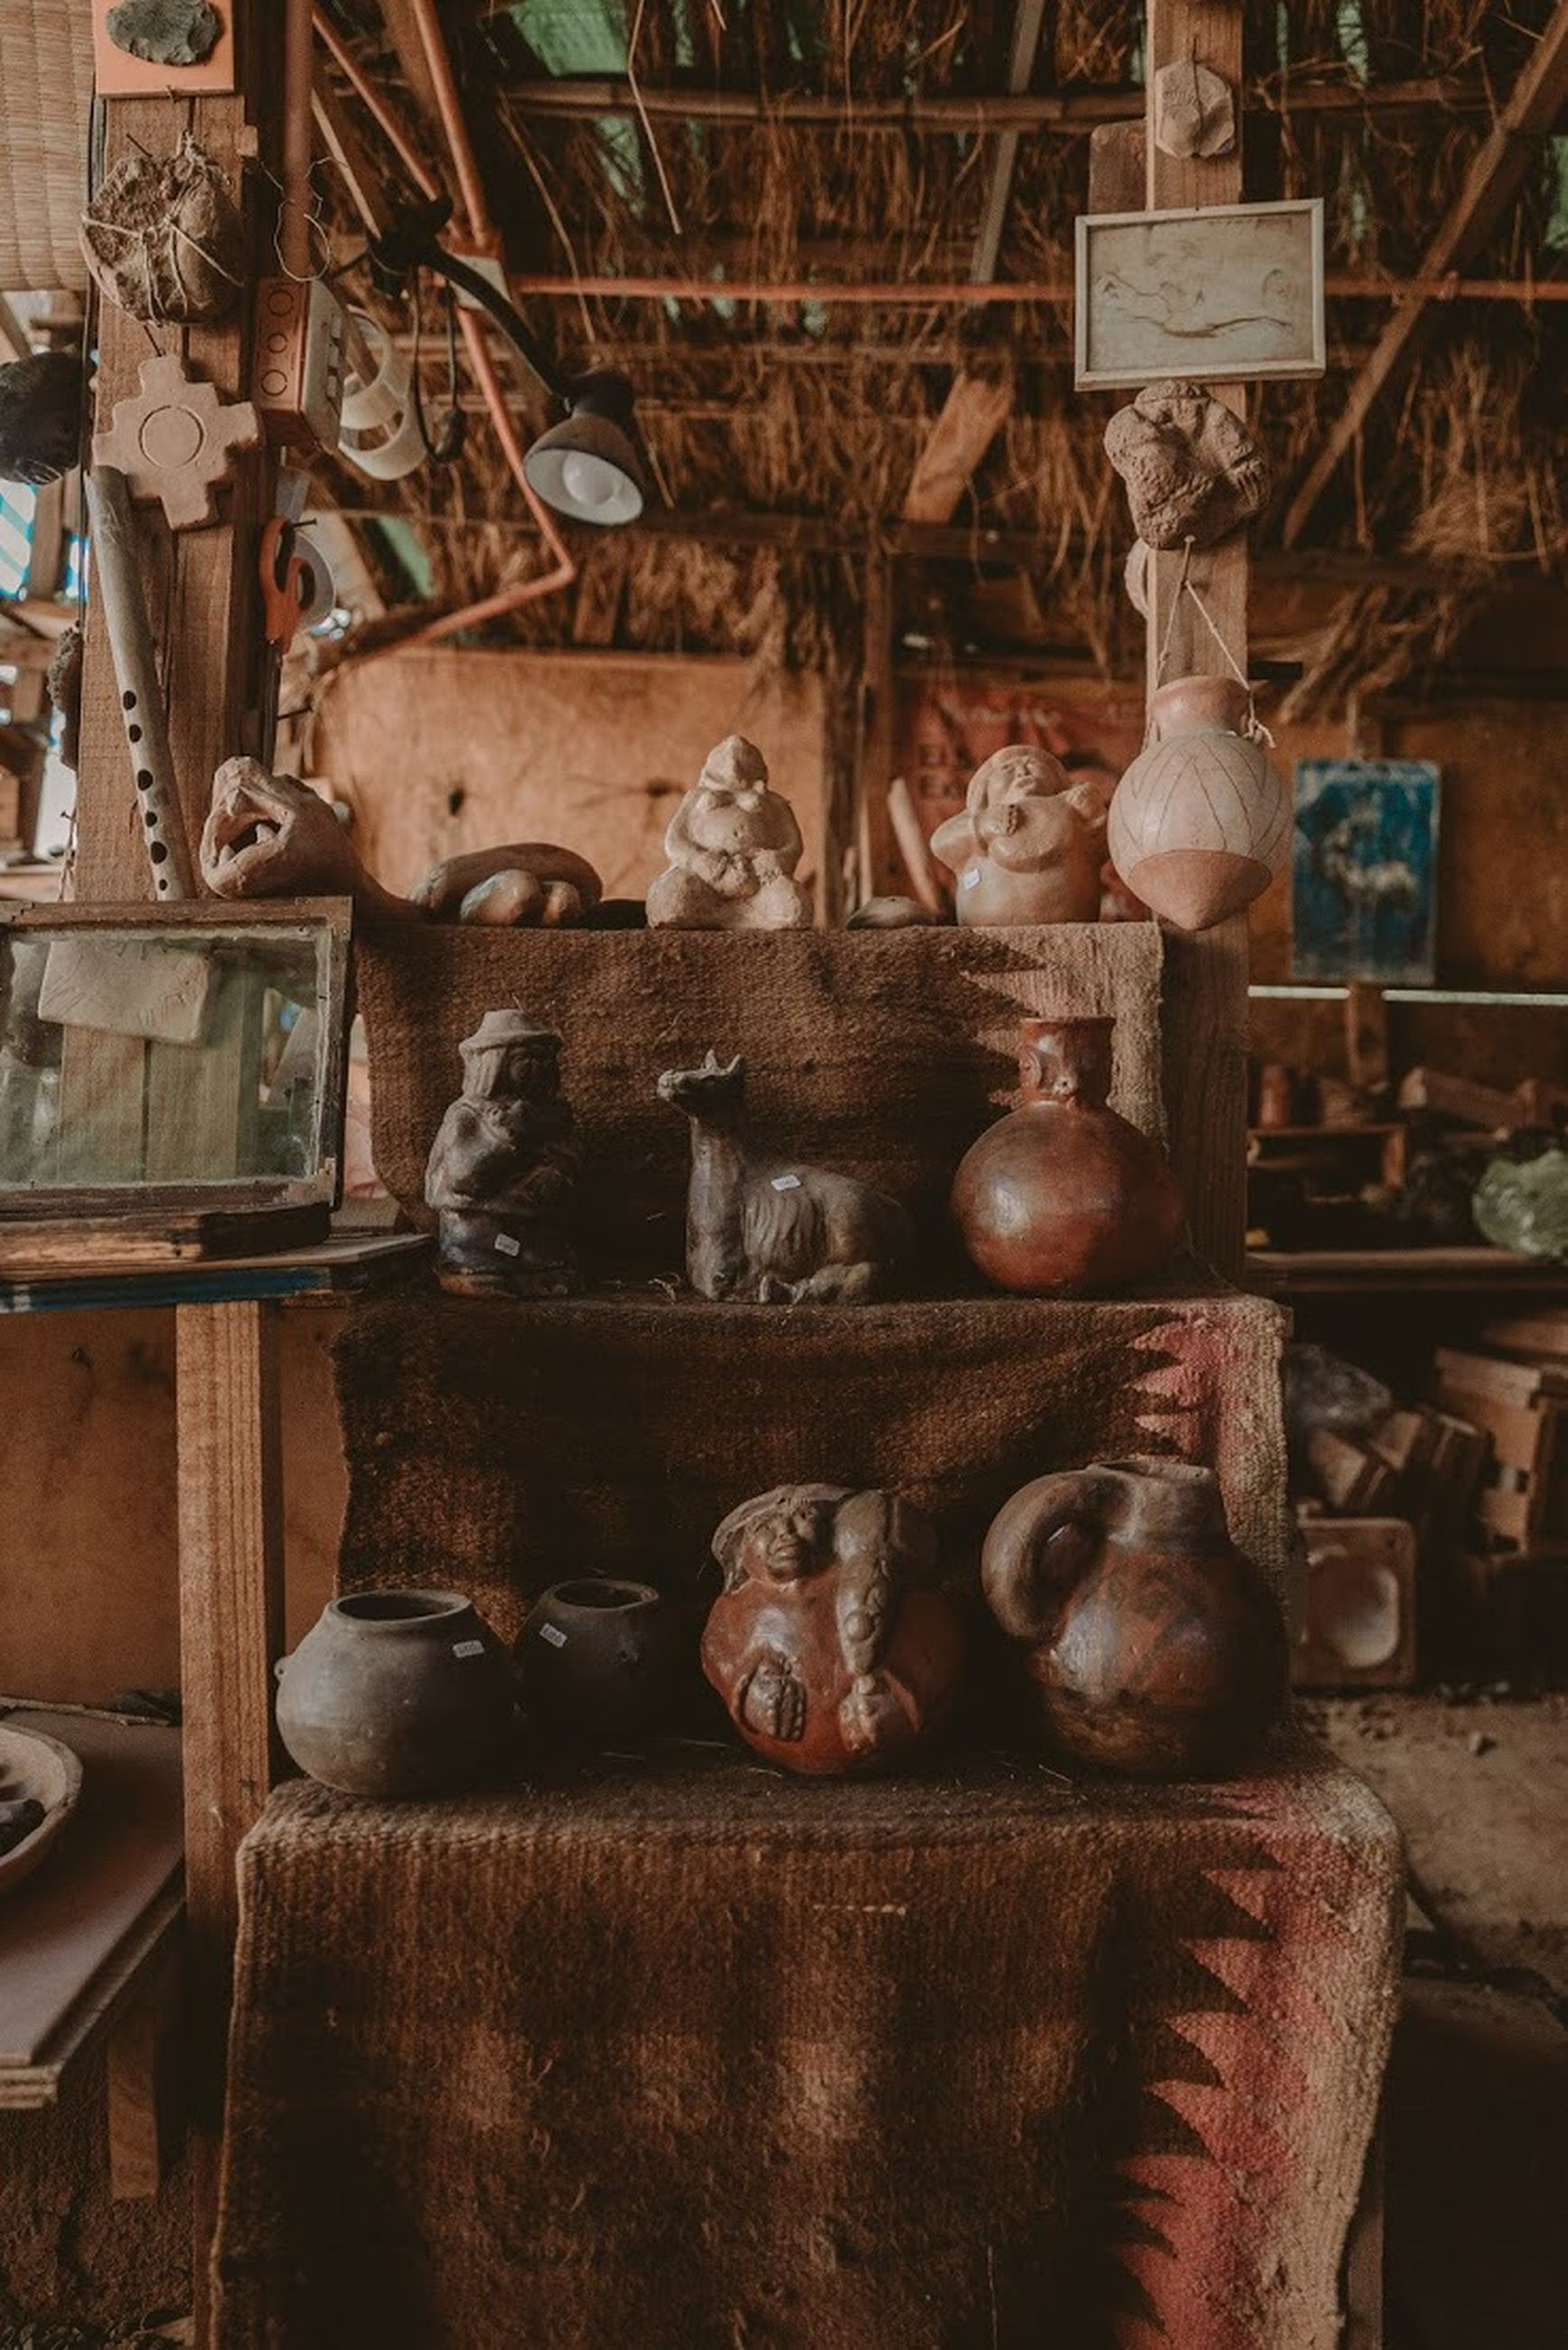 indoors, large group of objects, old, no people, shelf, wood - material, day, domestic room, art and craft, craft, container, history, workshop, group of objects, run-down, the past, abundance, human representation, deterioration, antique